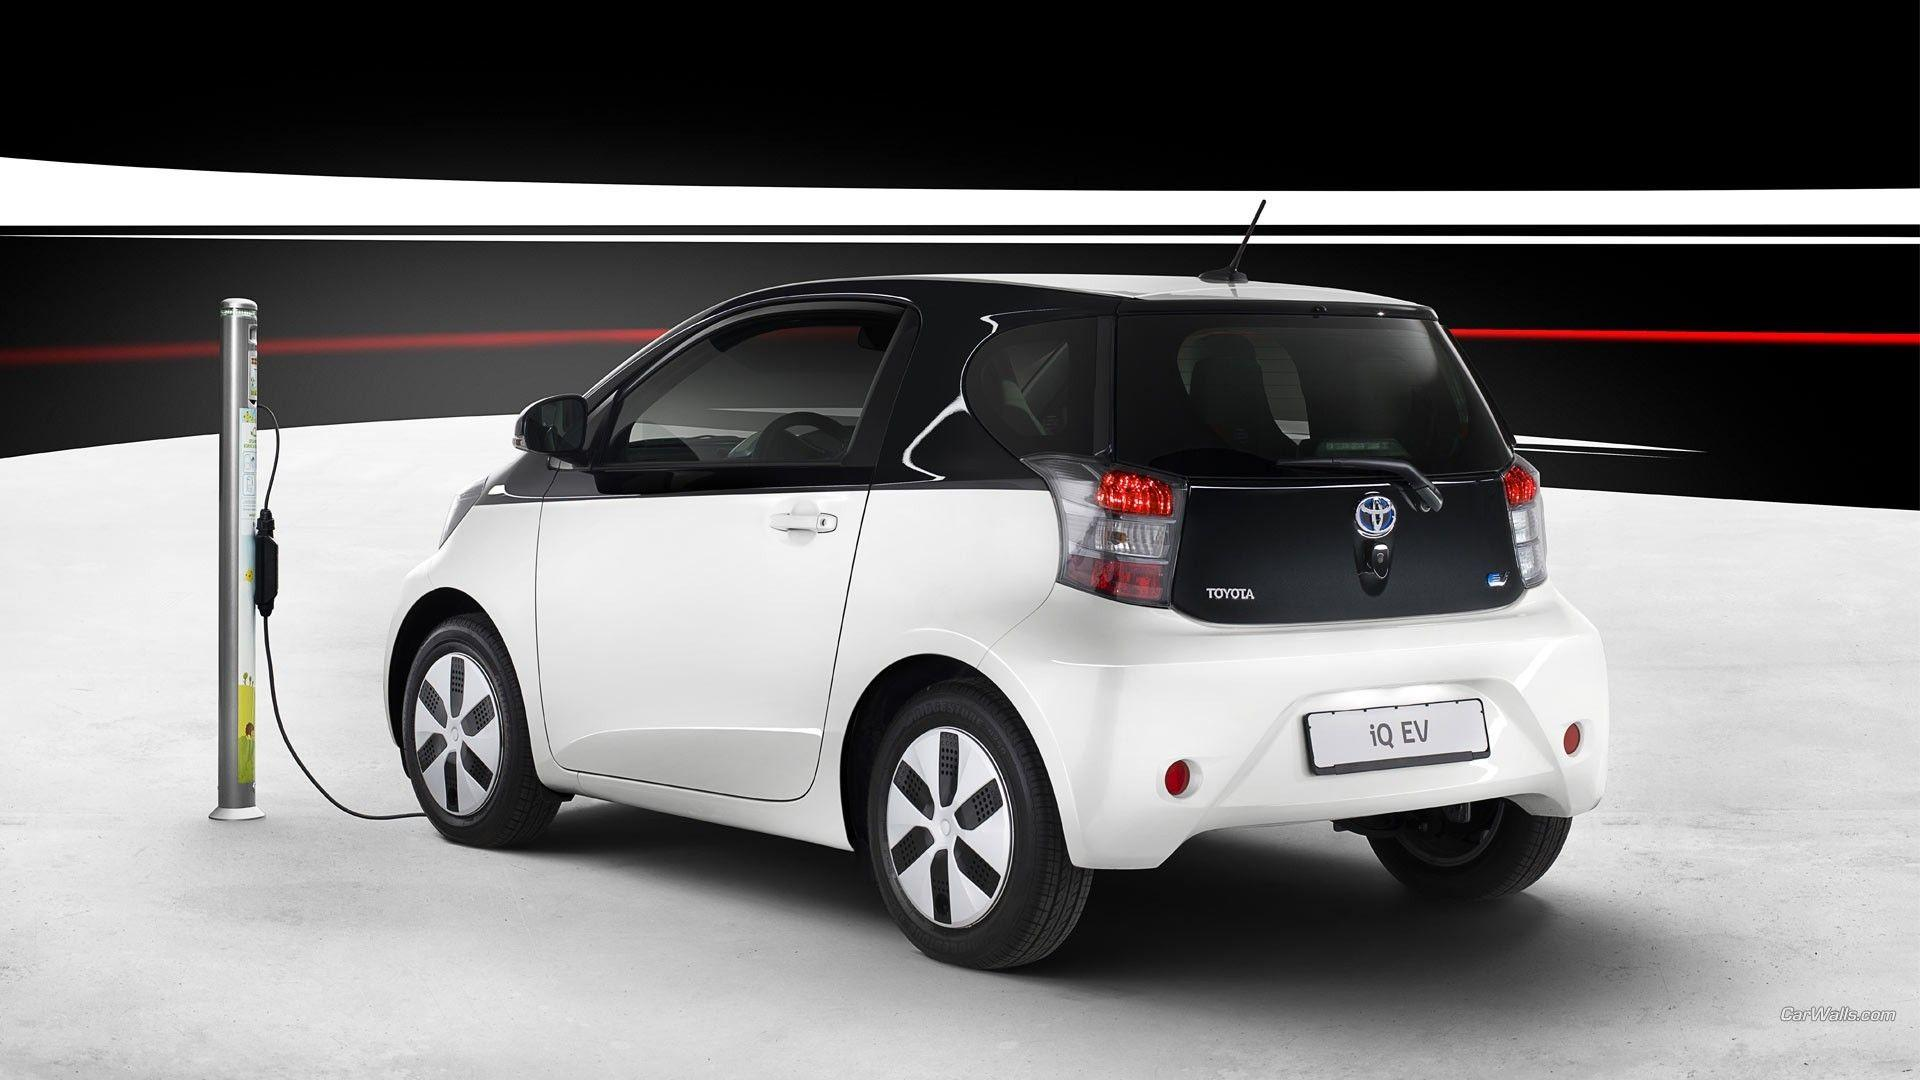 toyota iq car electric cars wallpapers and backgrounds